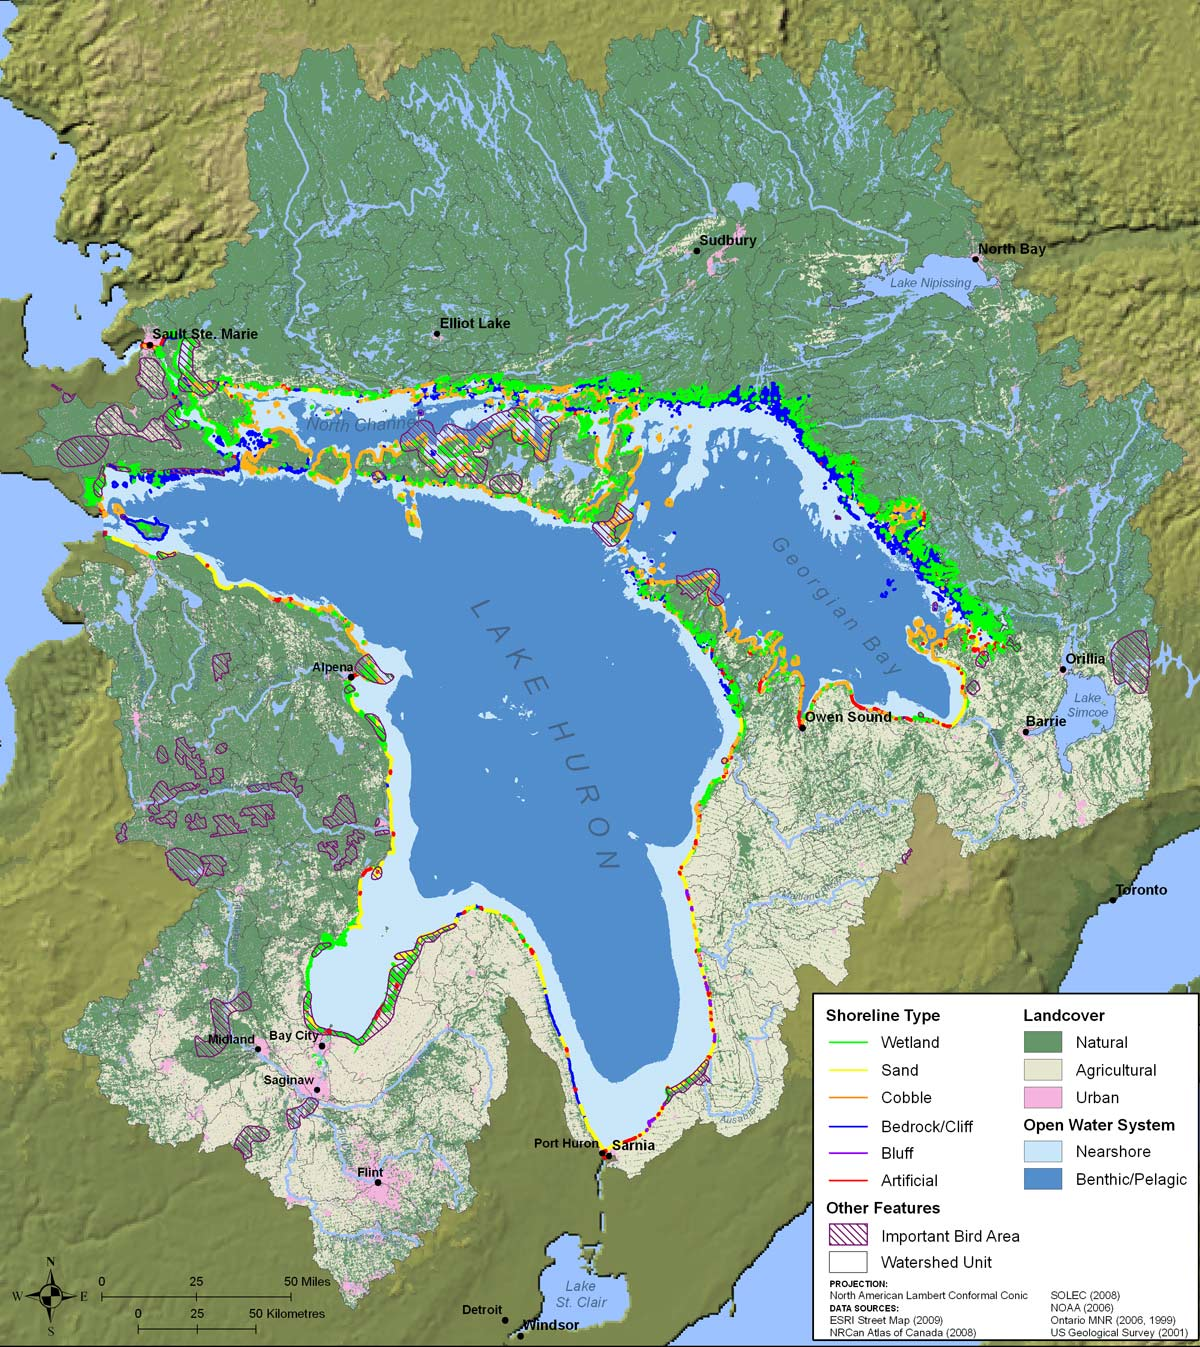 About the lake huron watershed biodiversity features of lake huron biodiversity features of lake huron sciox Gallery